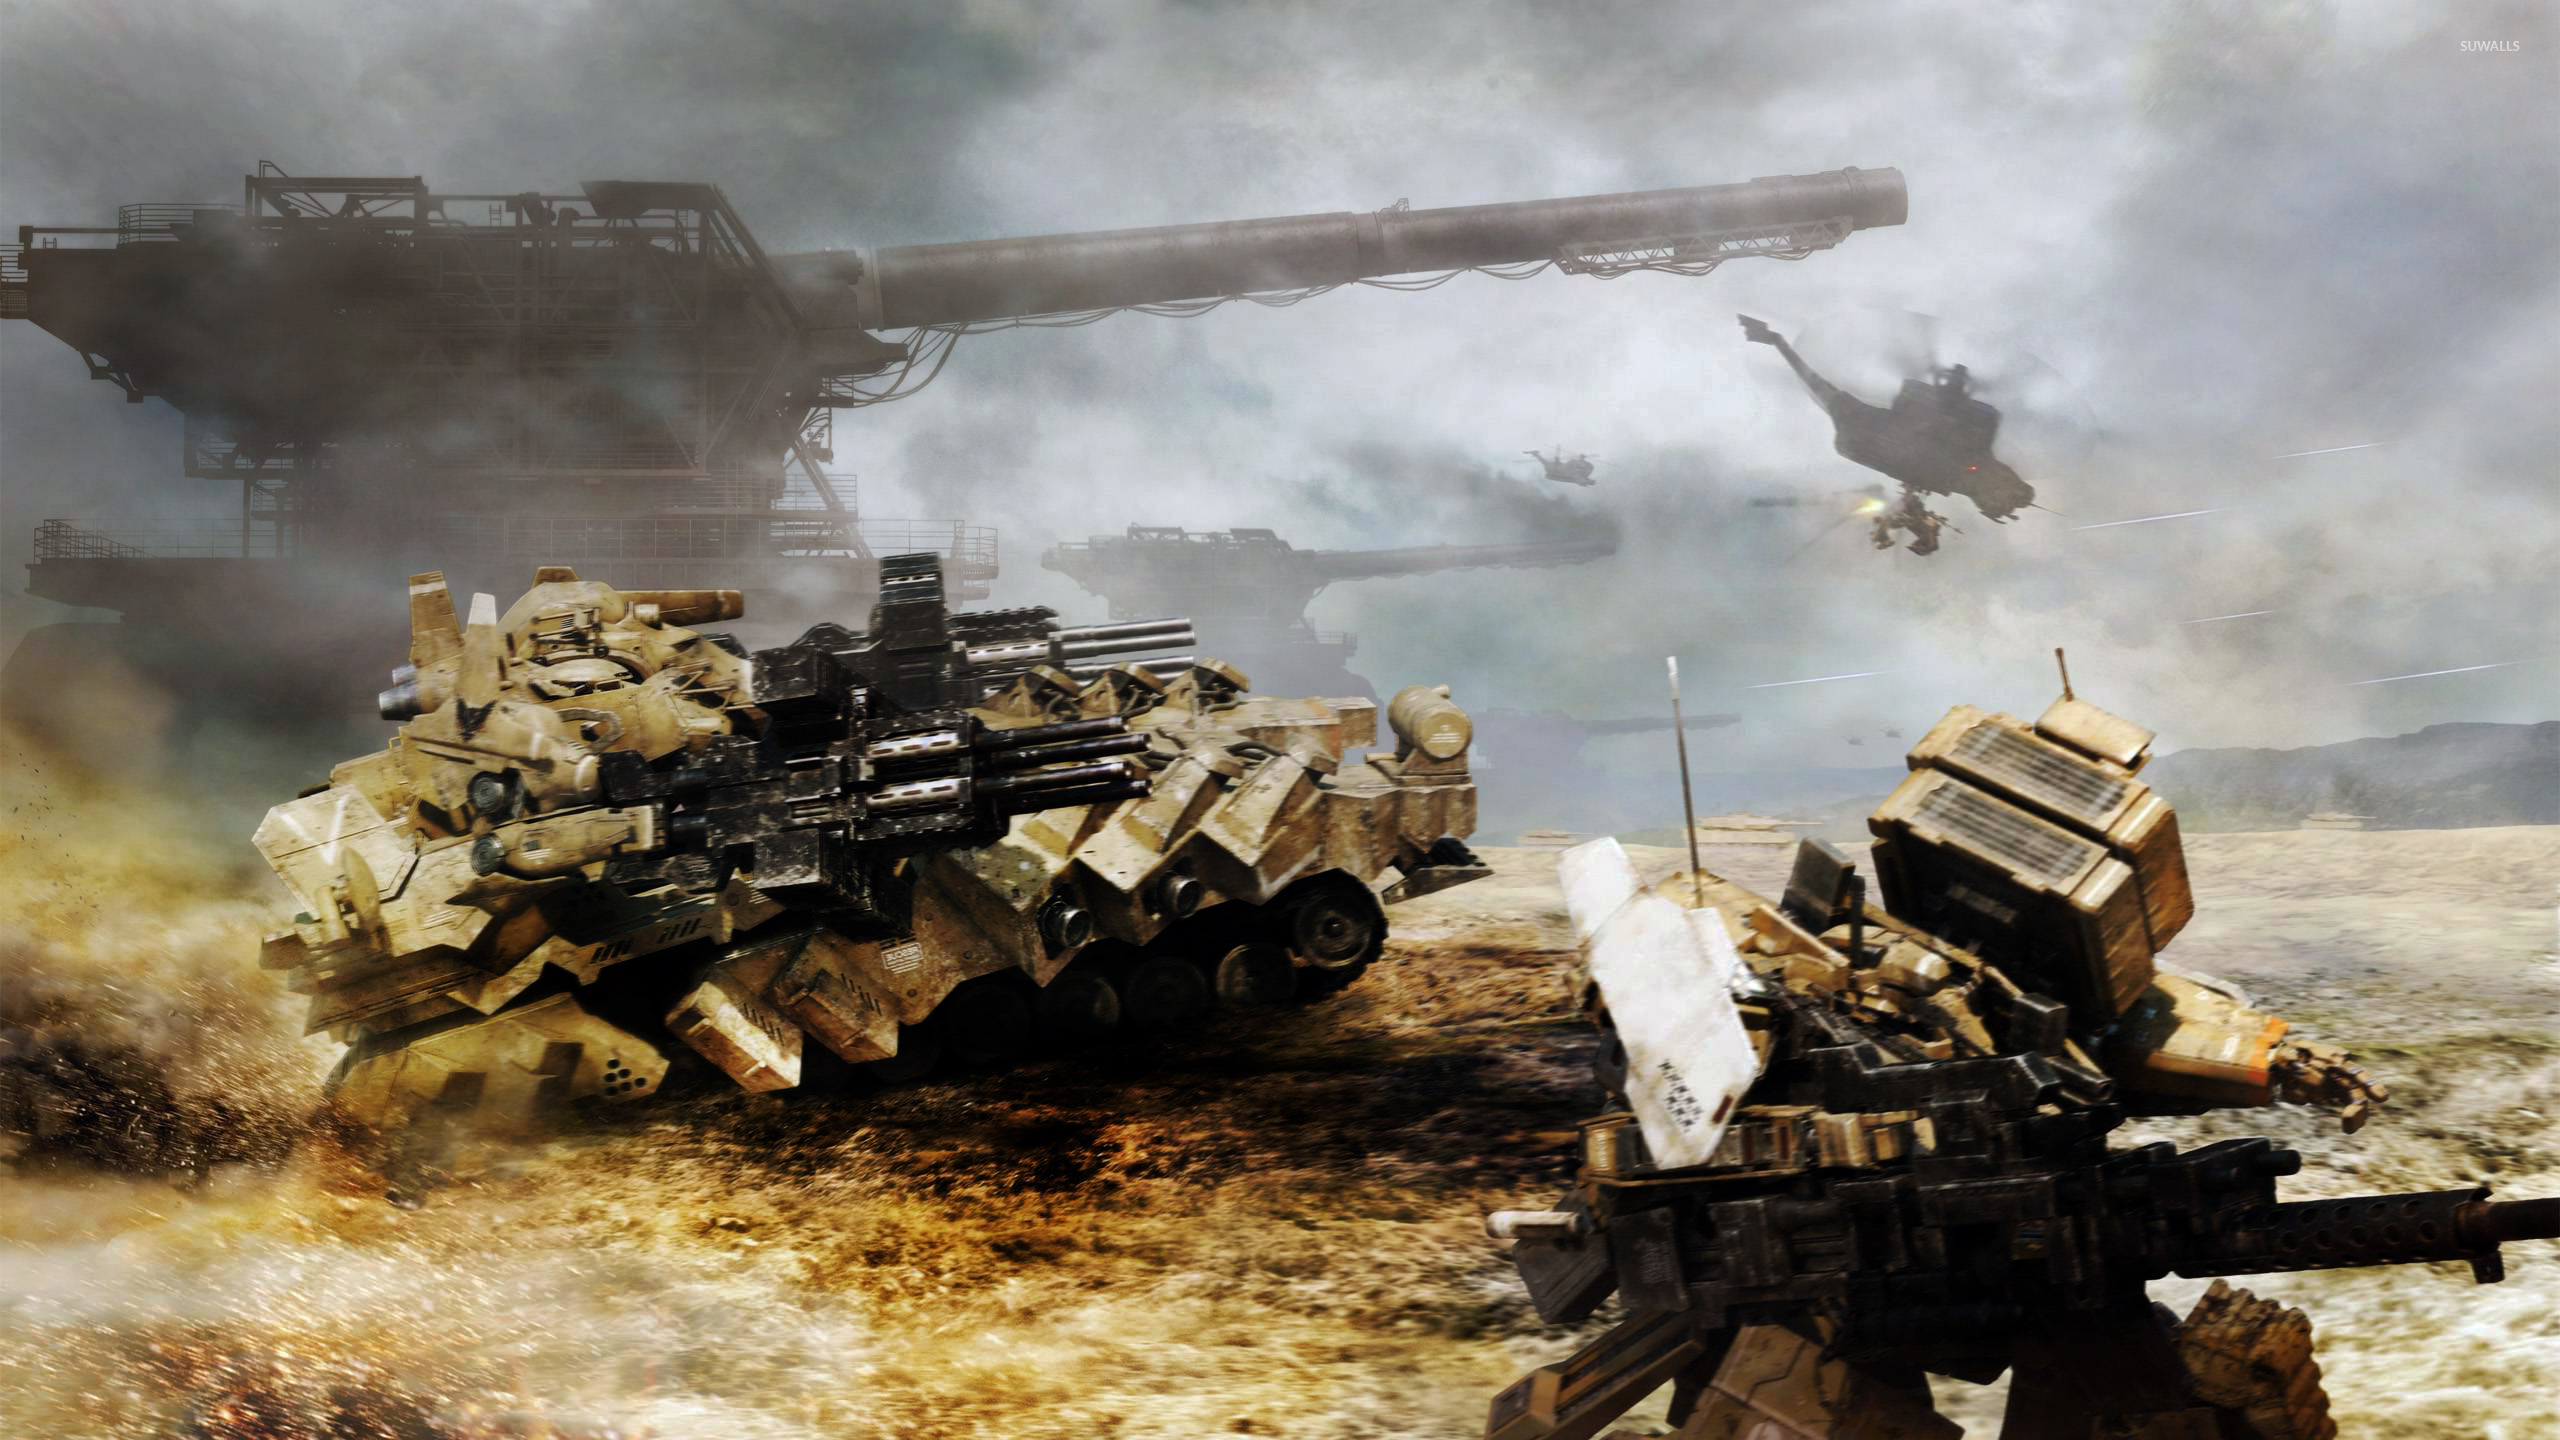 Malzel - Armored Core V wallpaper - Game wallpapers - #24848